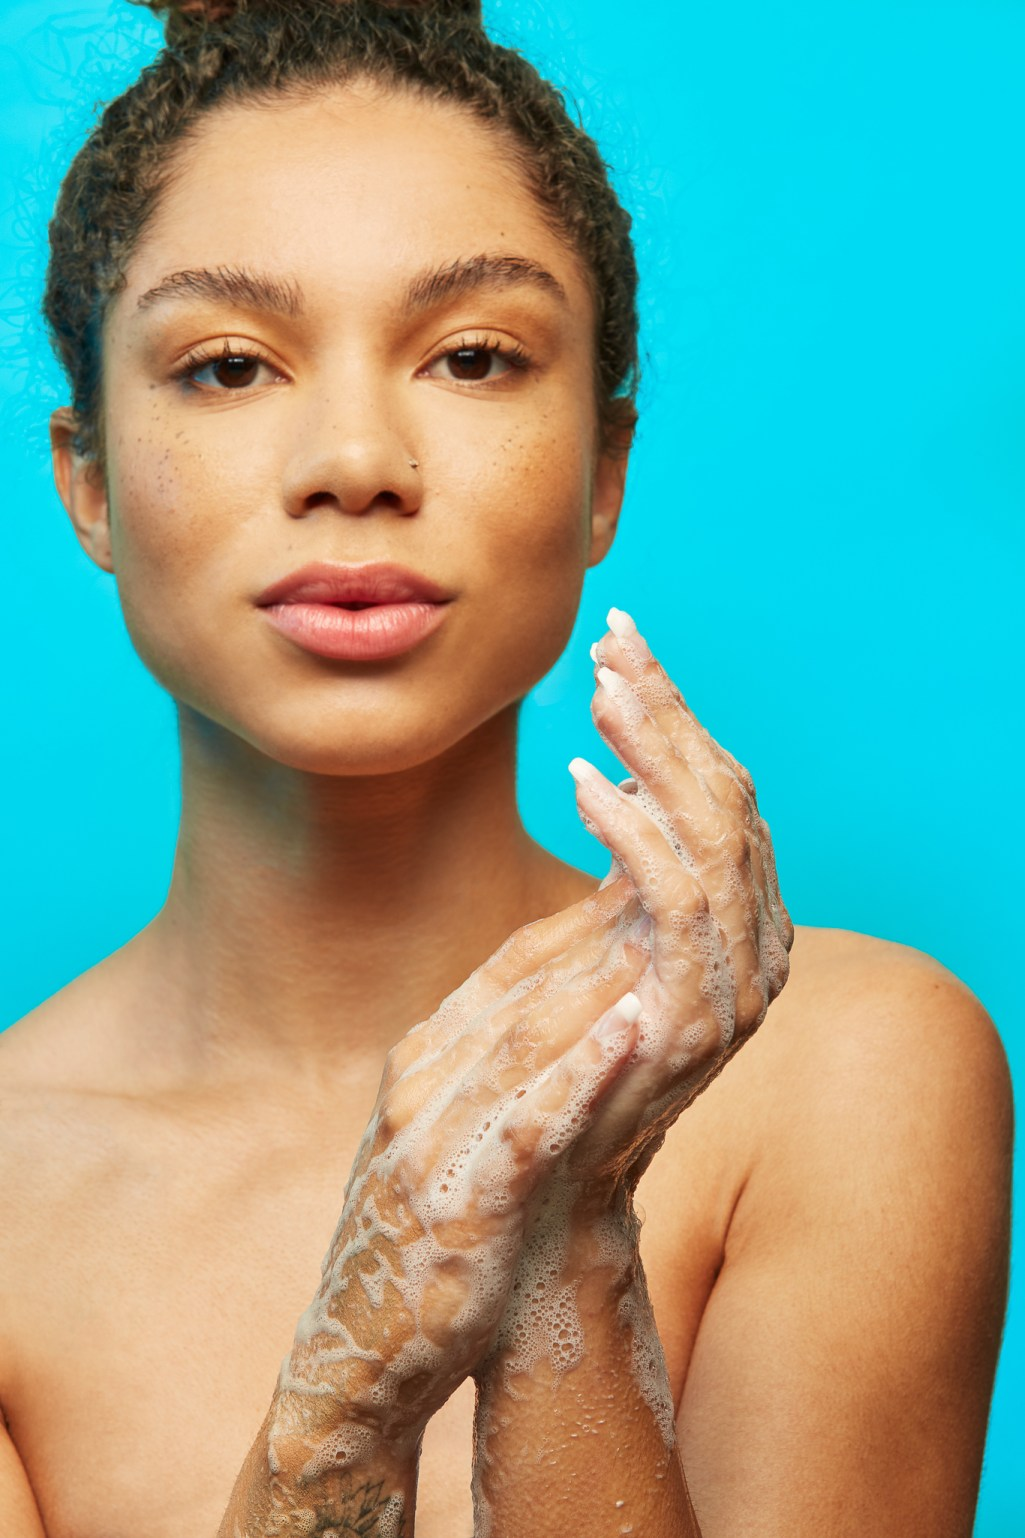 Advertising image, beauty portraits of black model with freckles and soapy hands. Photographer Ella Sophie, San Francisco California